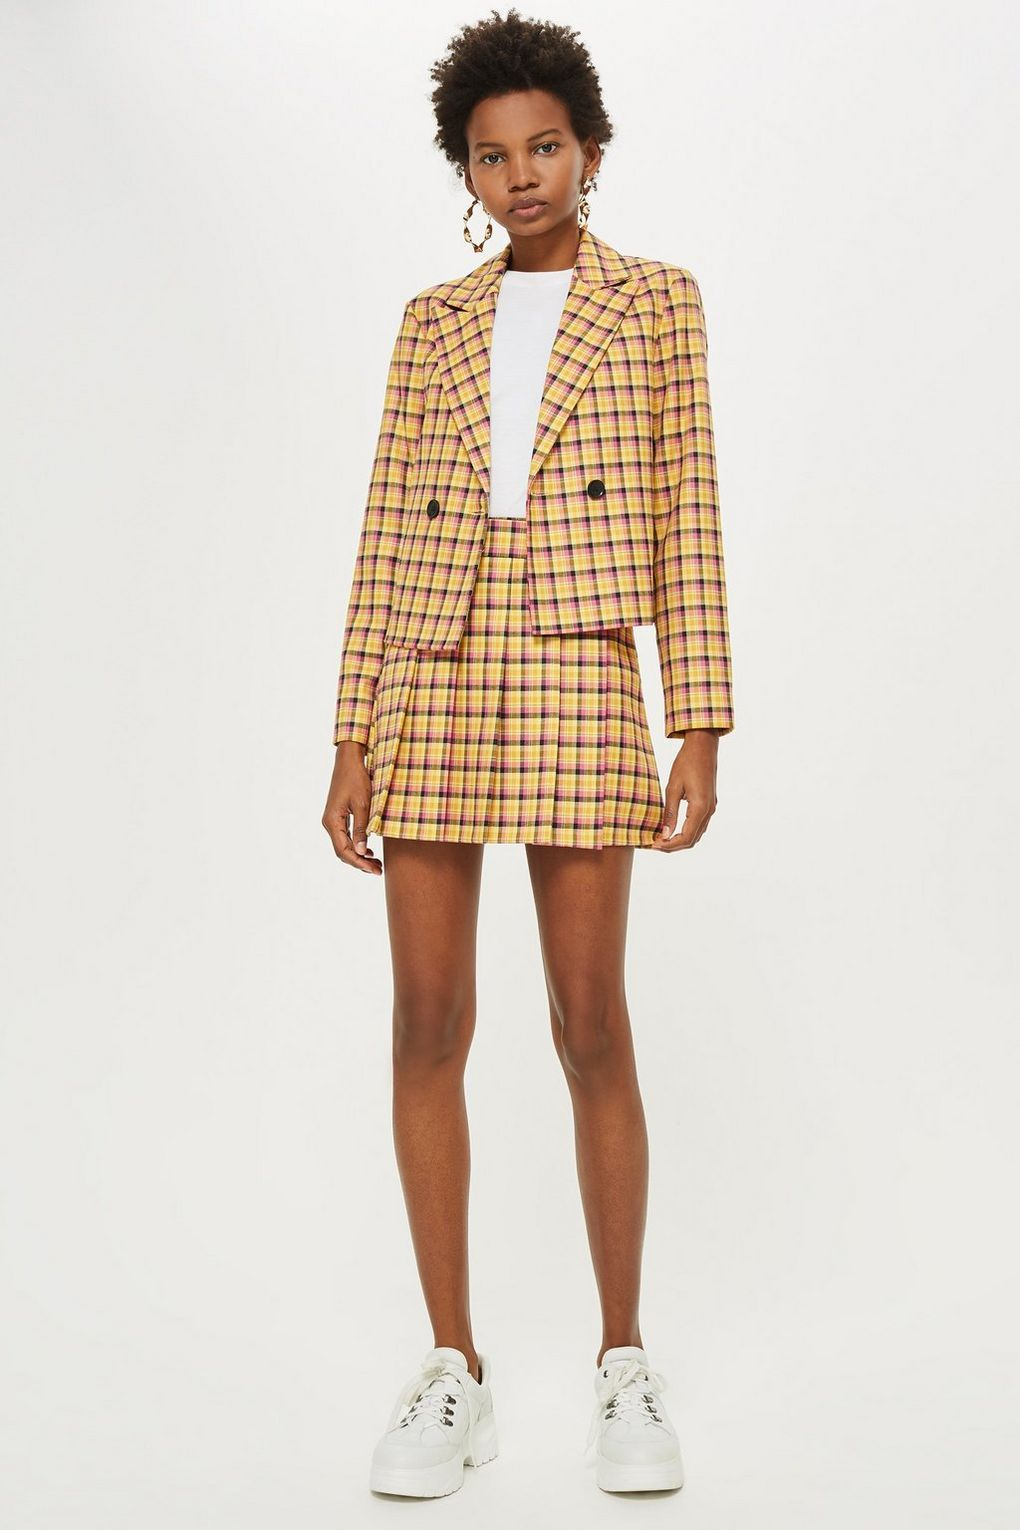 cb4001d4a8 Yellow Check Suit - Autumn / Winter 2018 - Clothing - Topshop USA